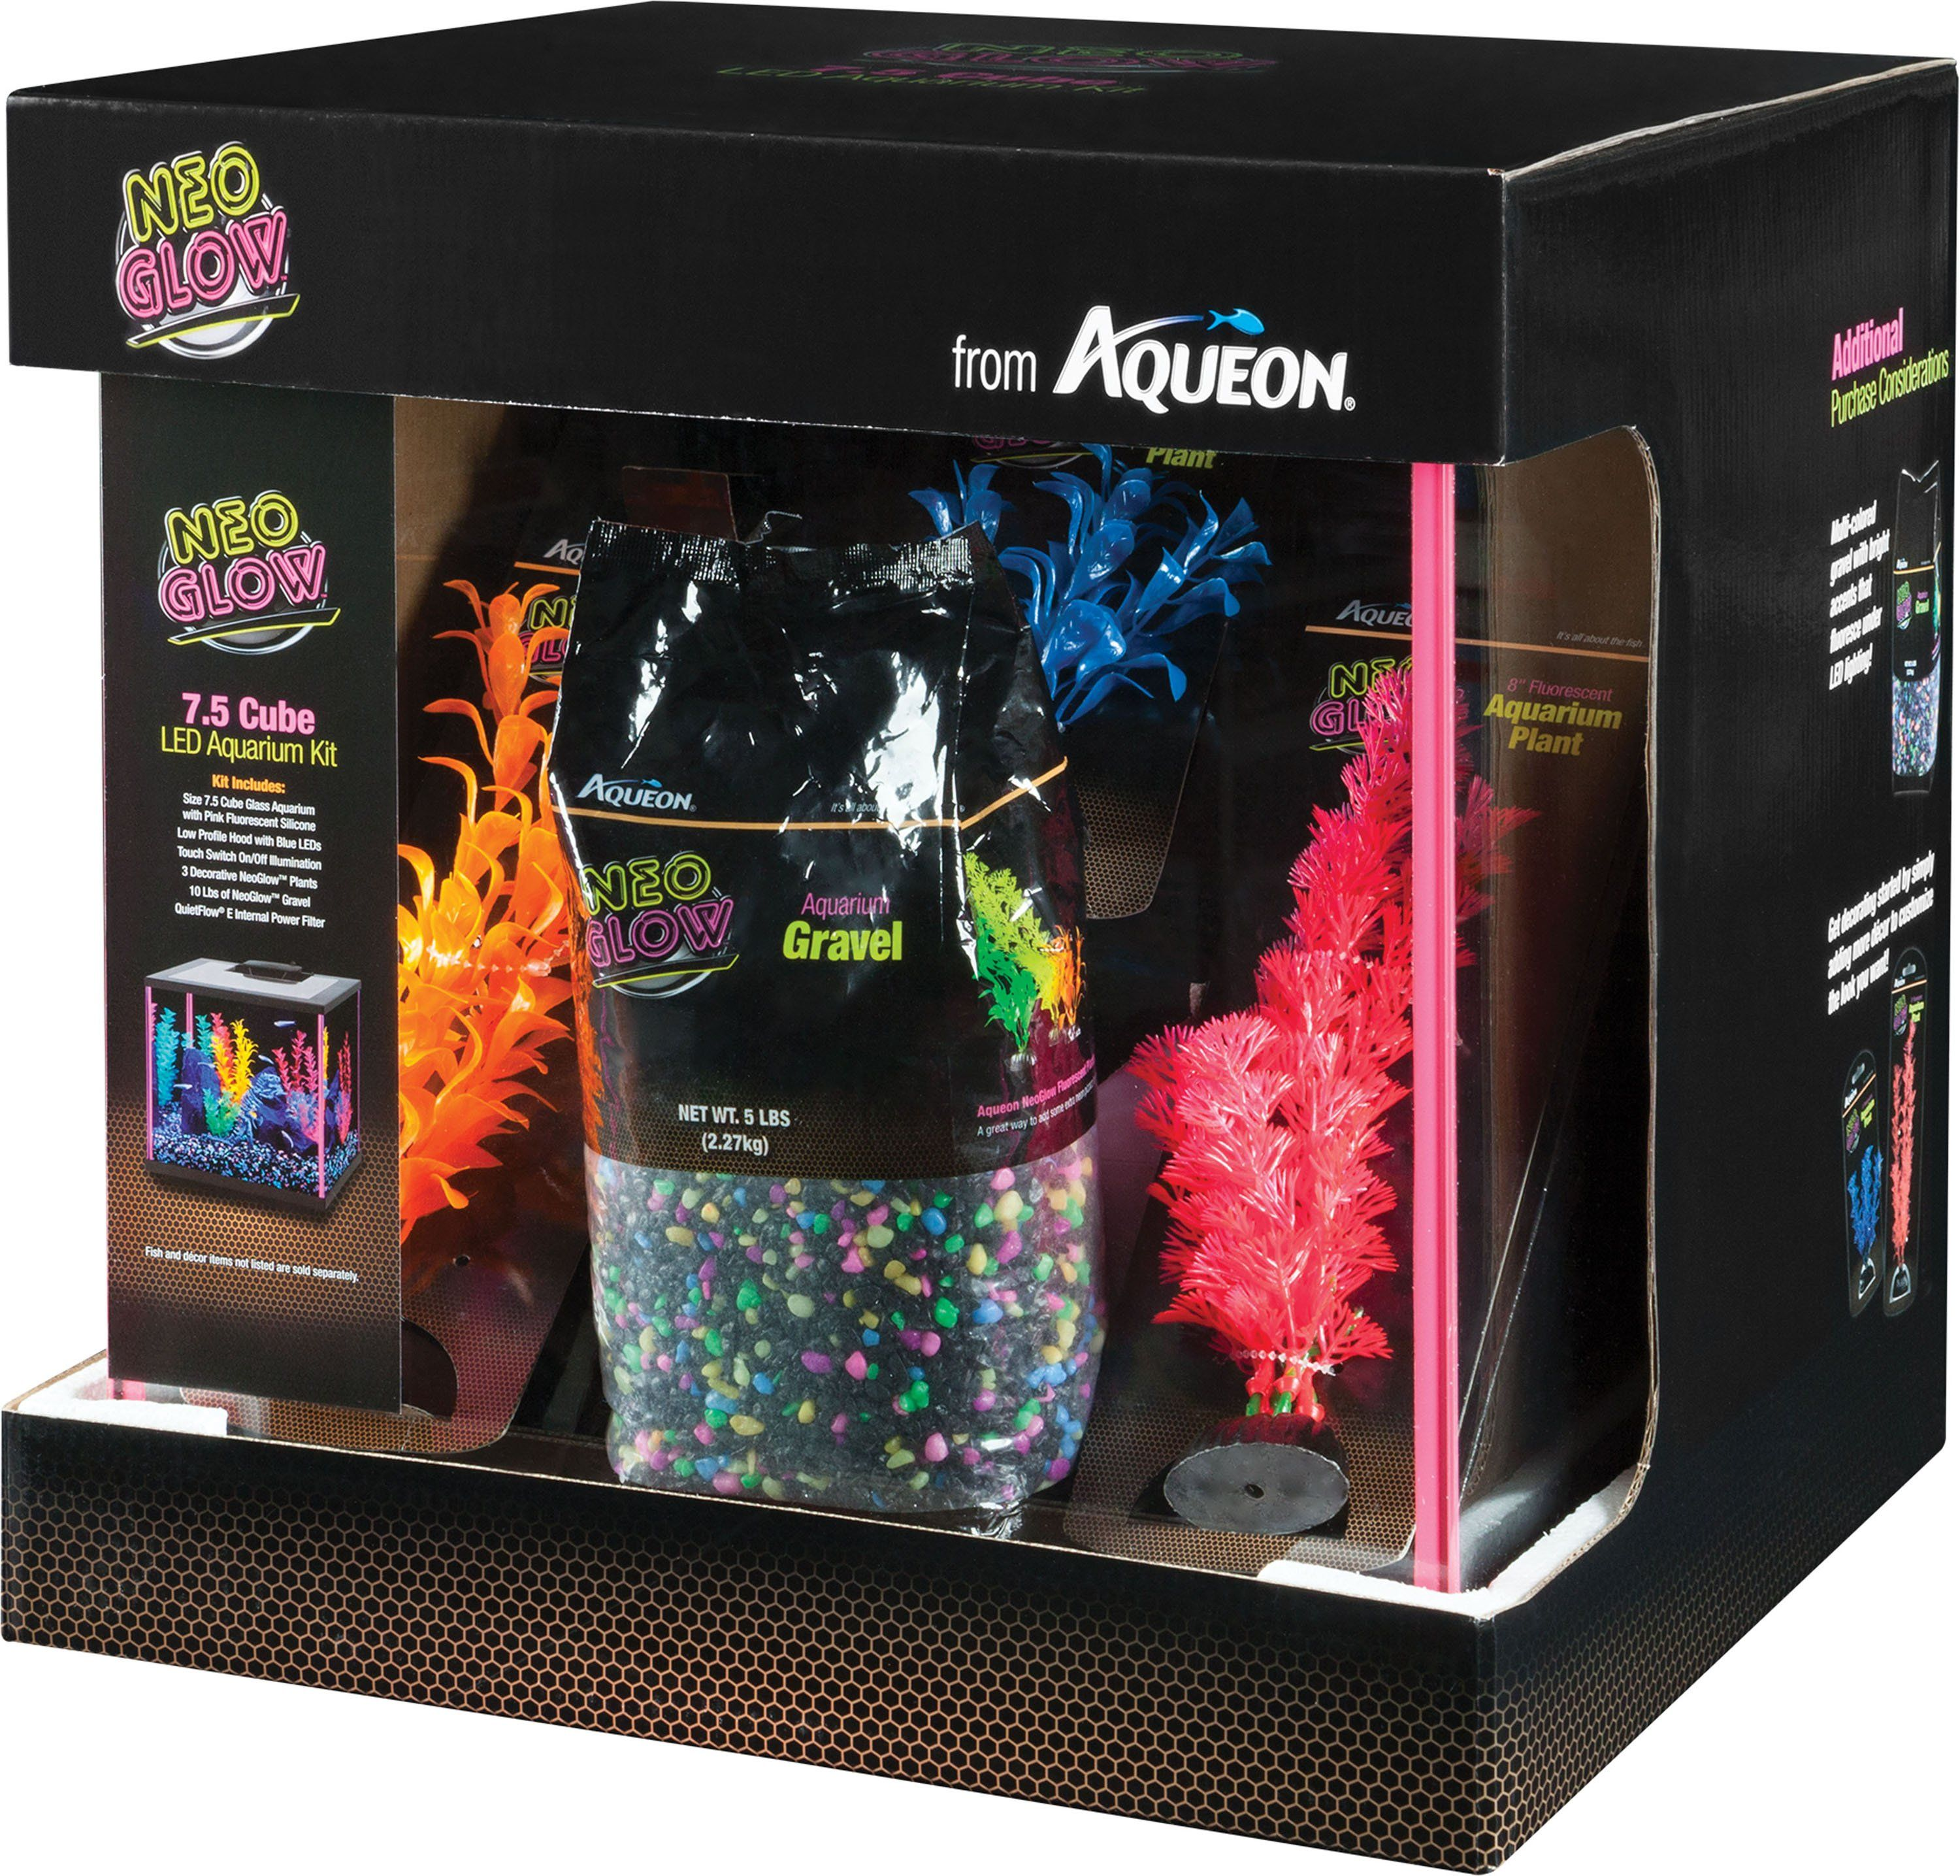 Aqueon Products Glass Aqueon Neoglow Aquarium Kit Cube Pink 7 5